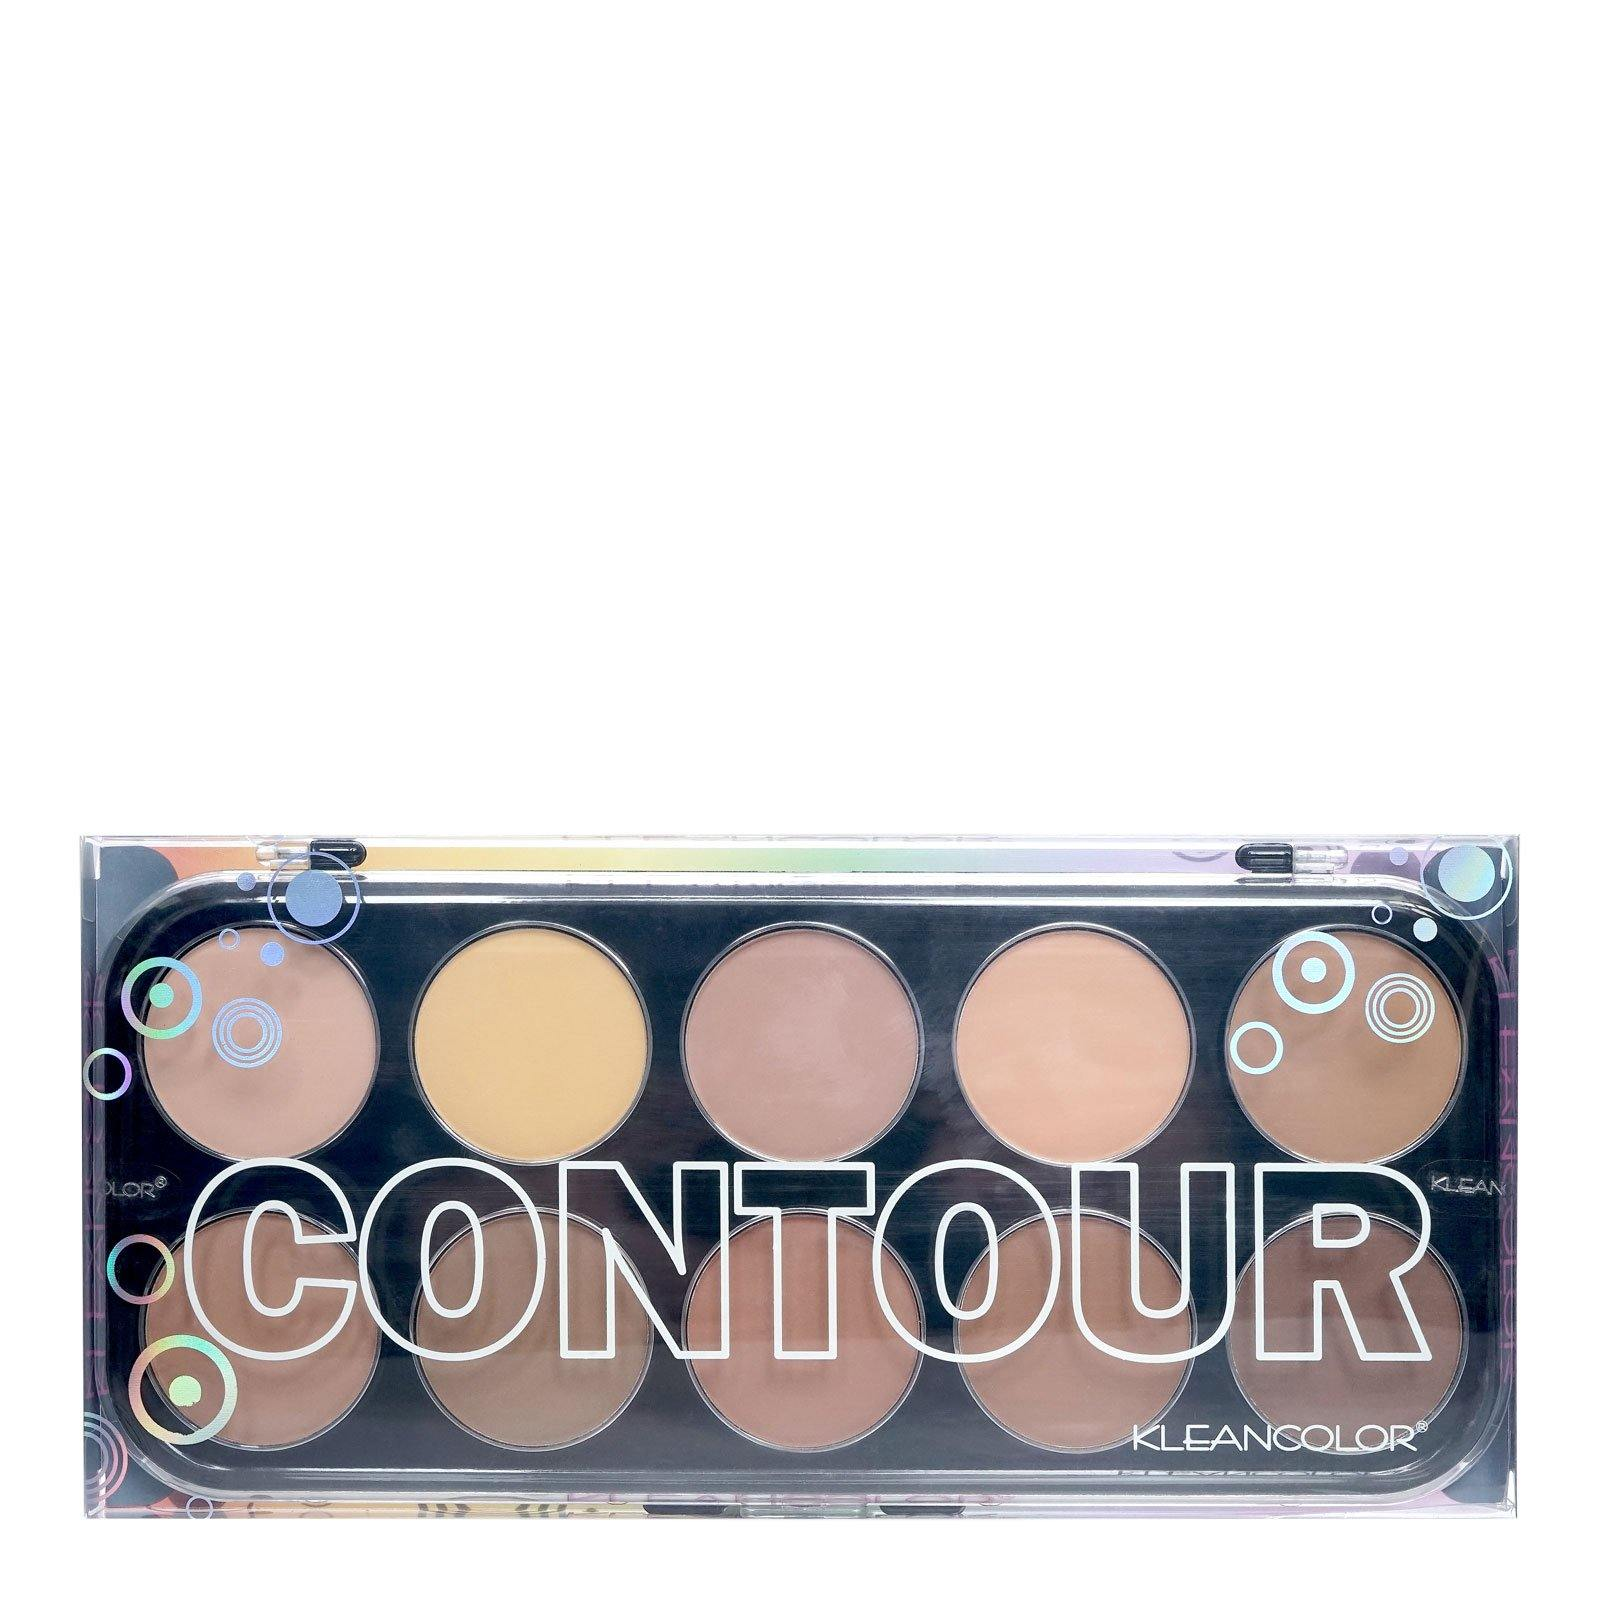 KLEANCOLOR Contour Kit, powder formula (BZ2119) (6/cs)